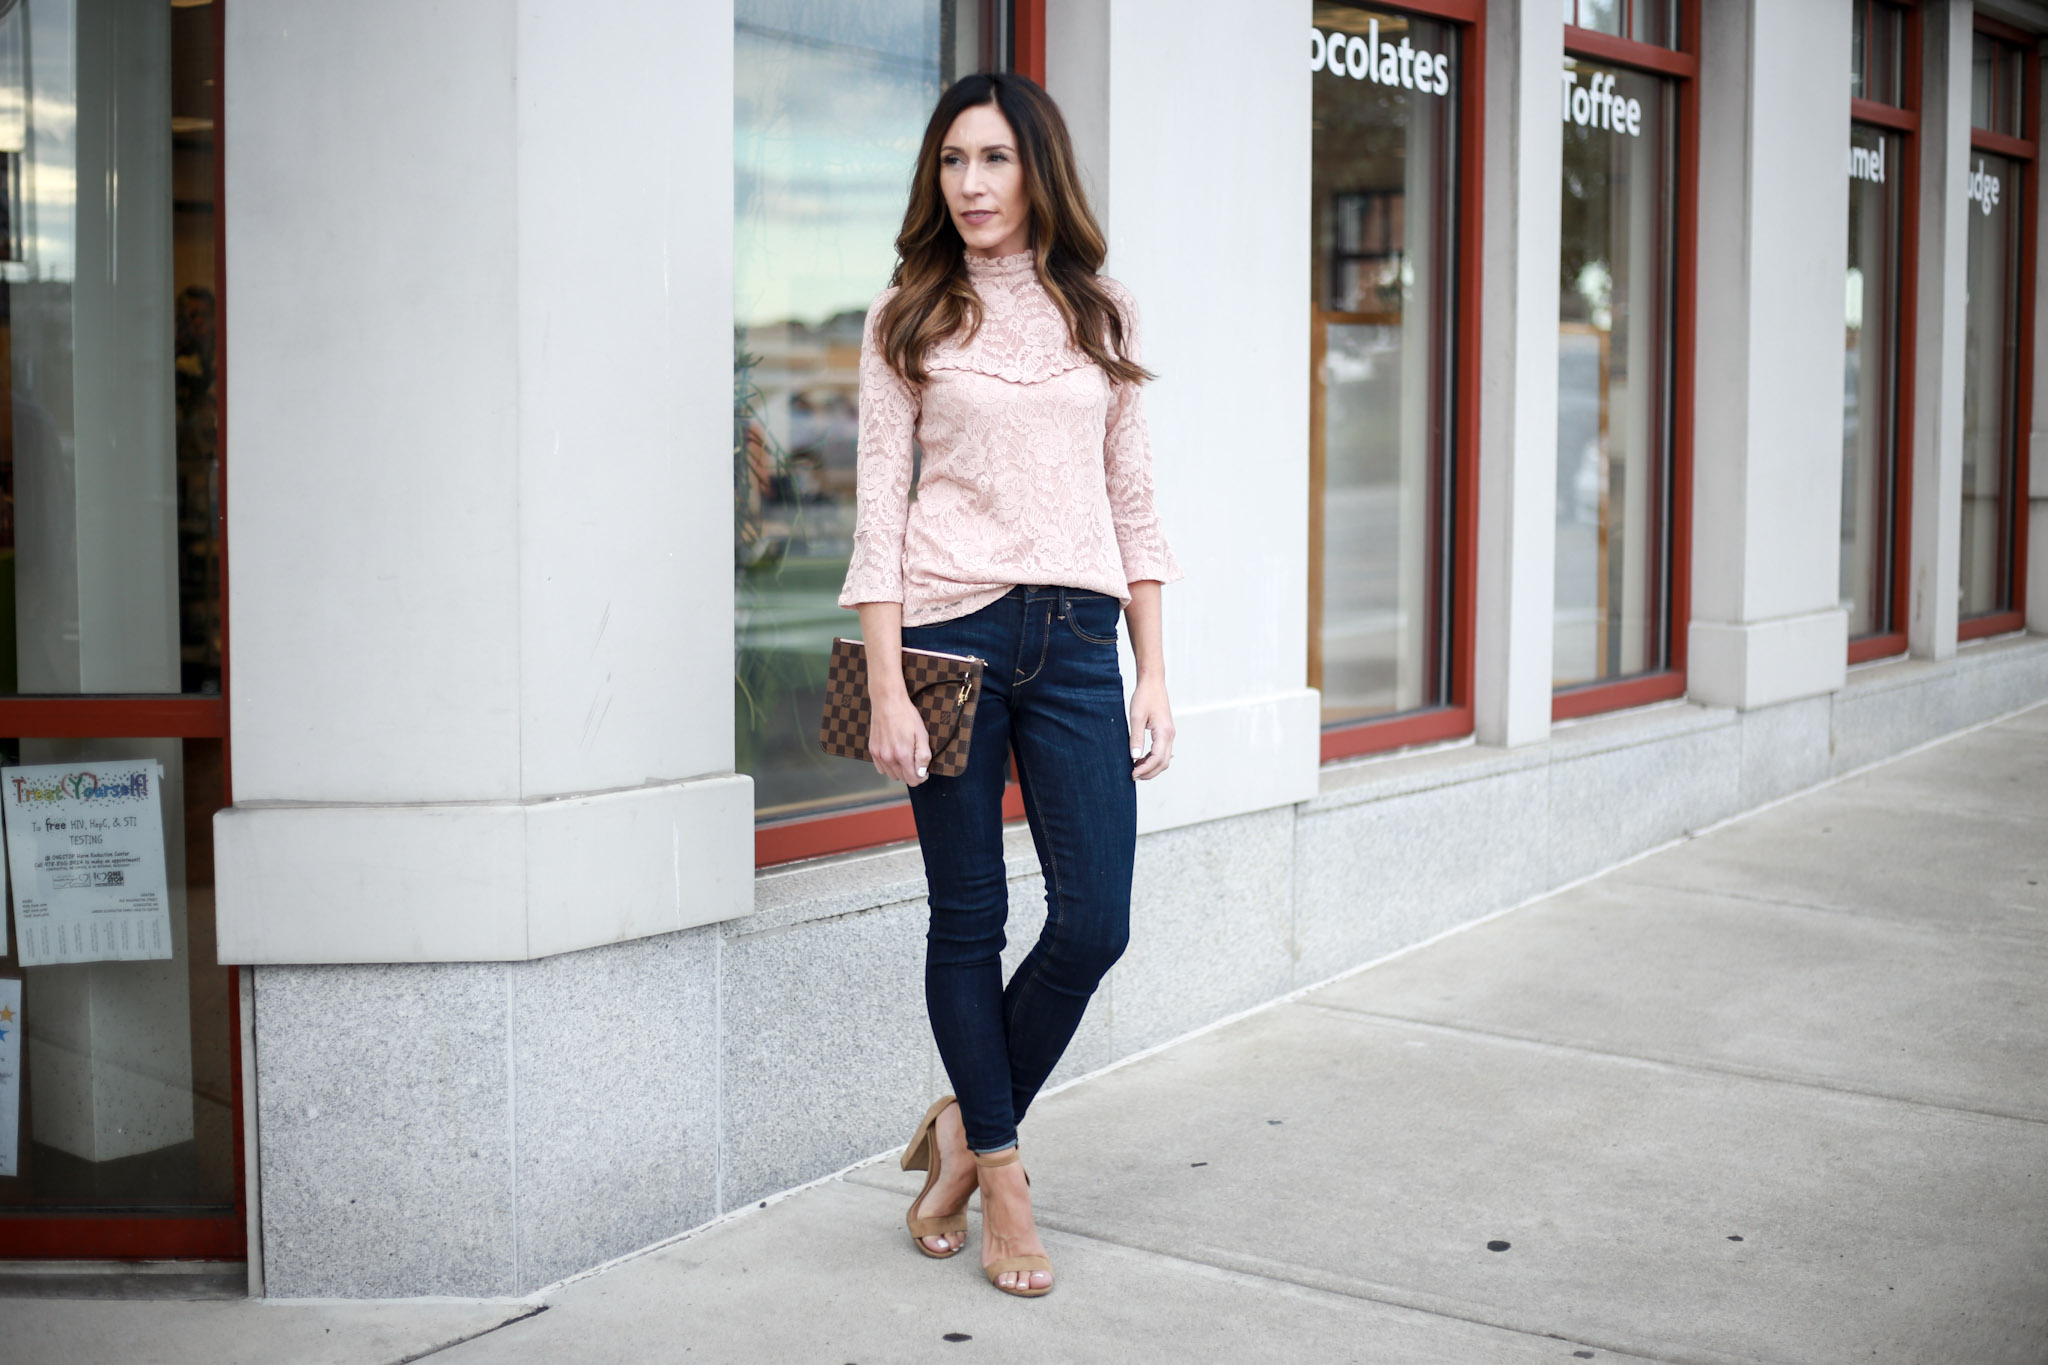 dressing your capsule wardrobe skinnies for date night!